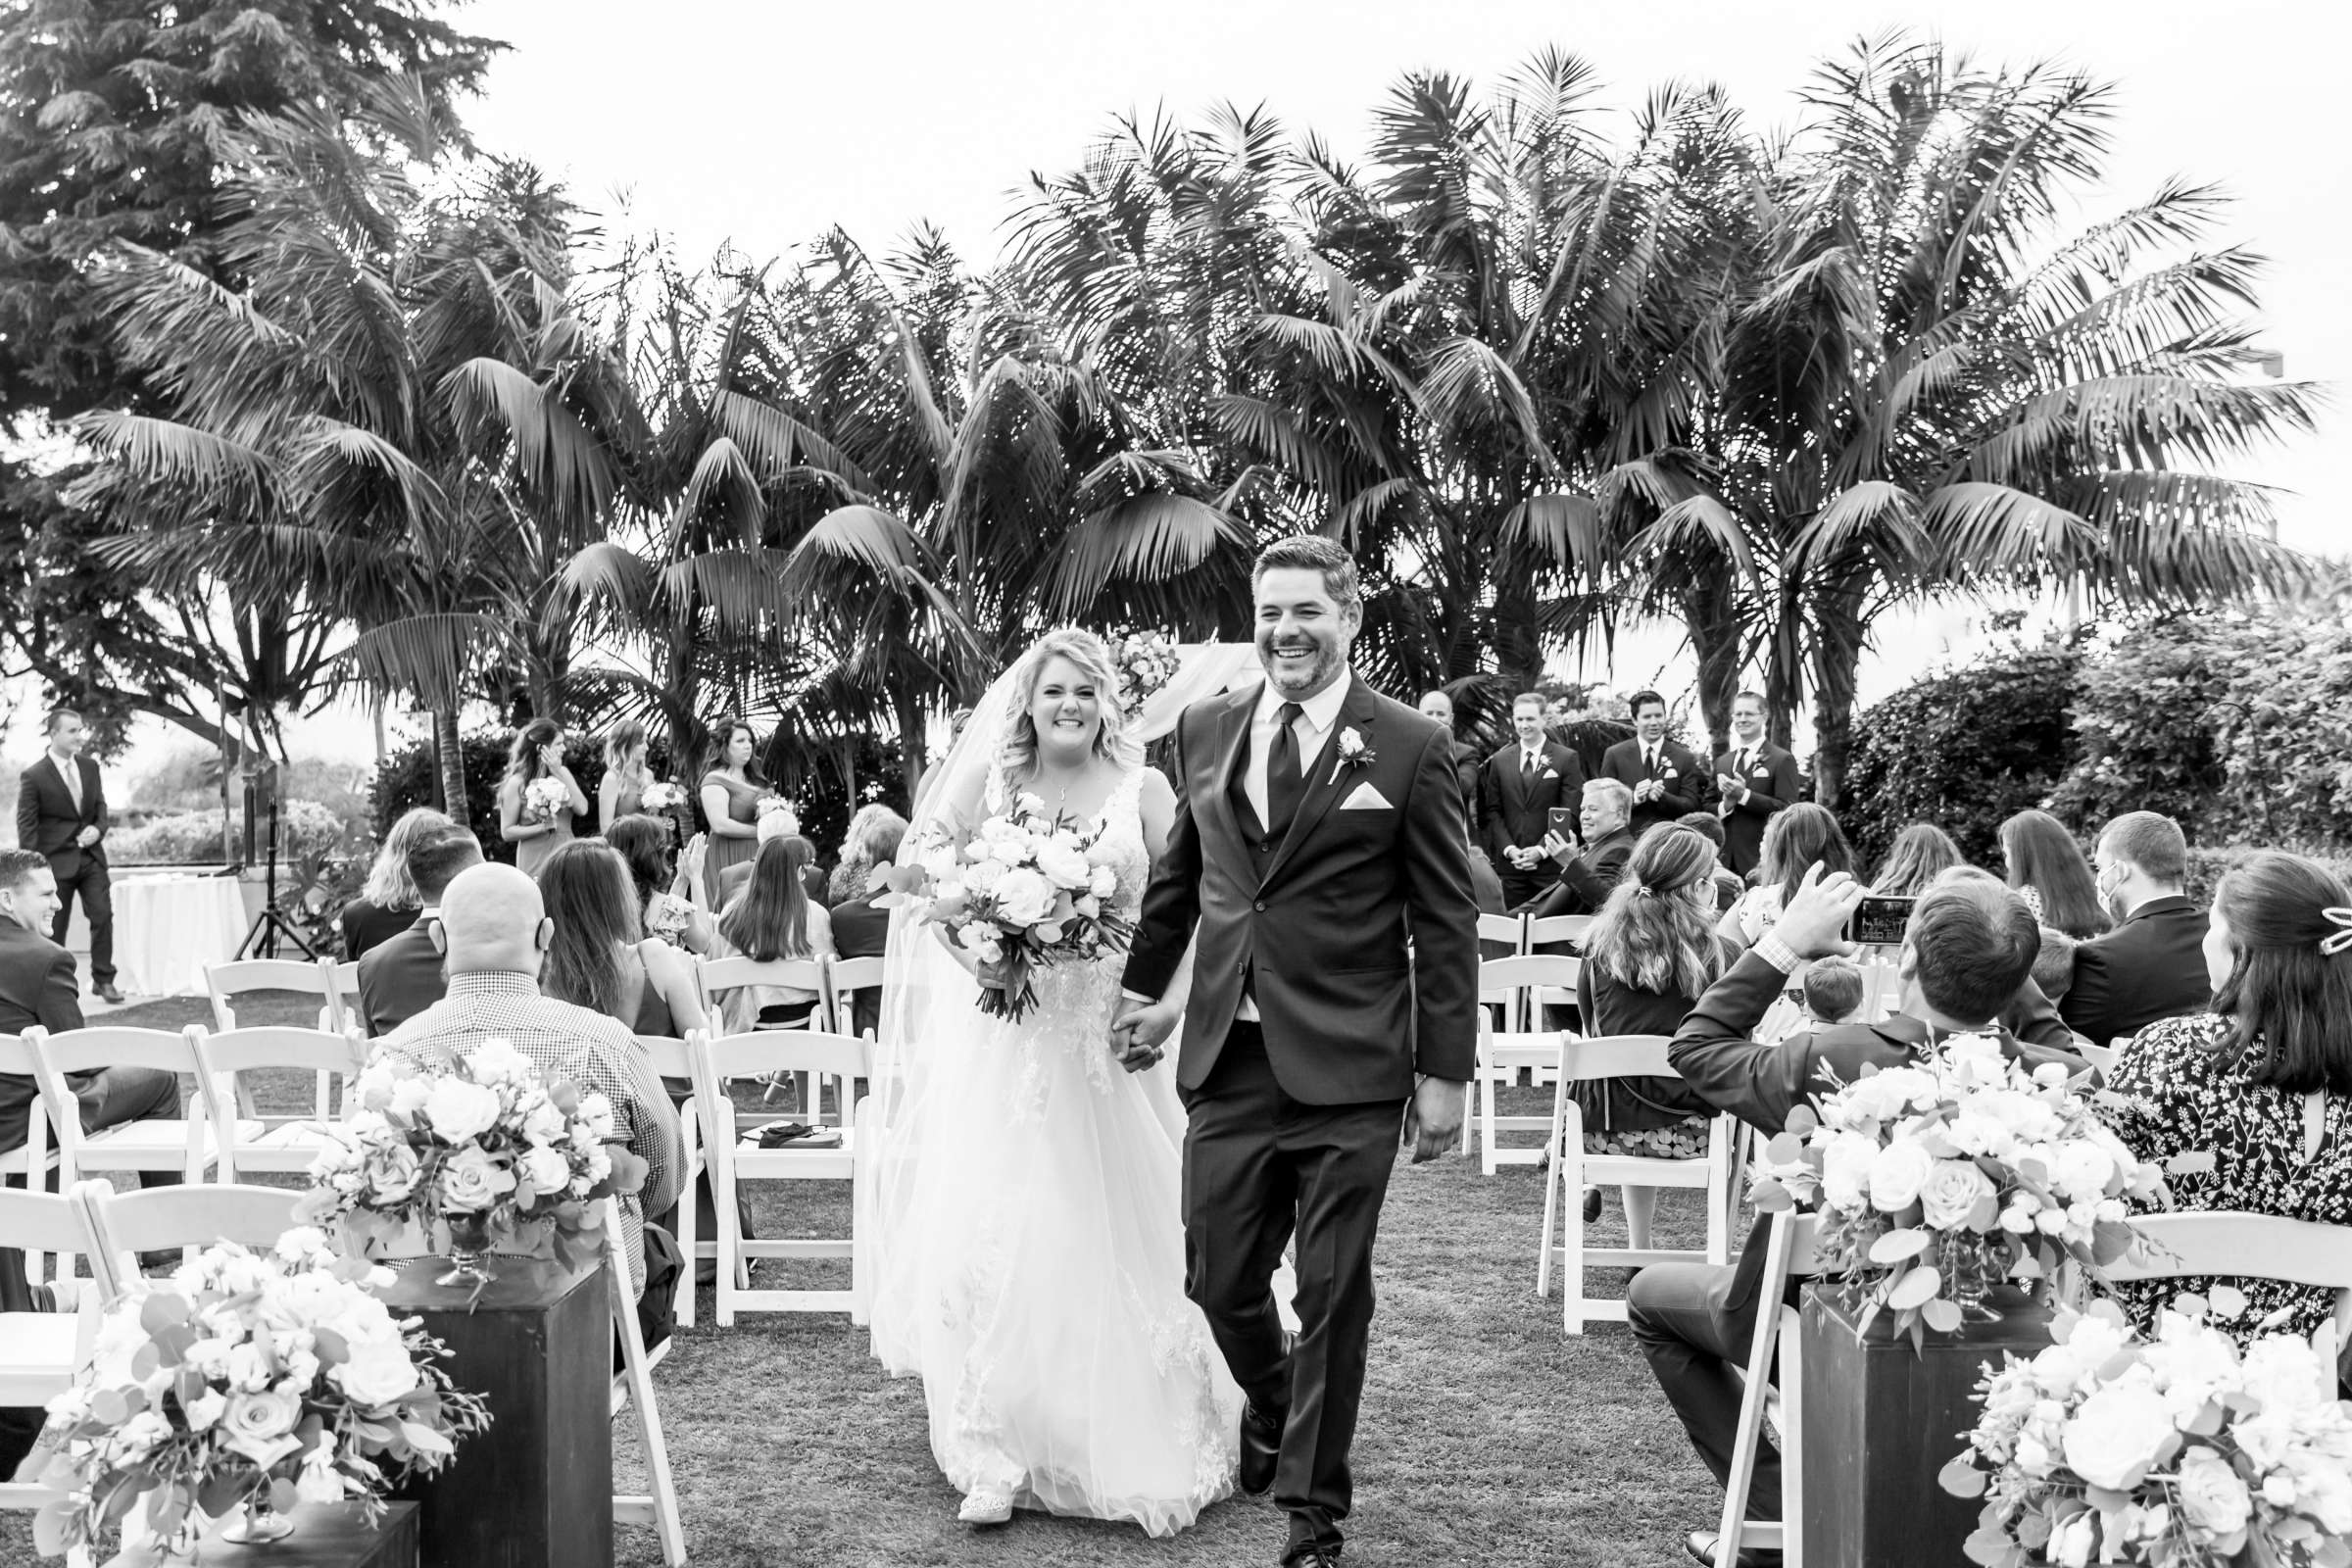 Cape Rey Carlsbad, A Hilton Resort Wedding, Michelle and Justin Wedding Photo #69 by True Photography